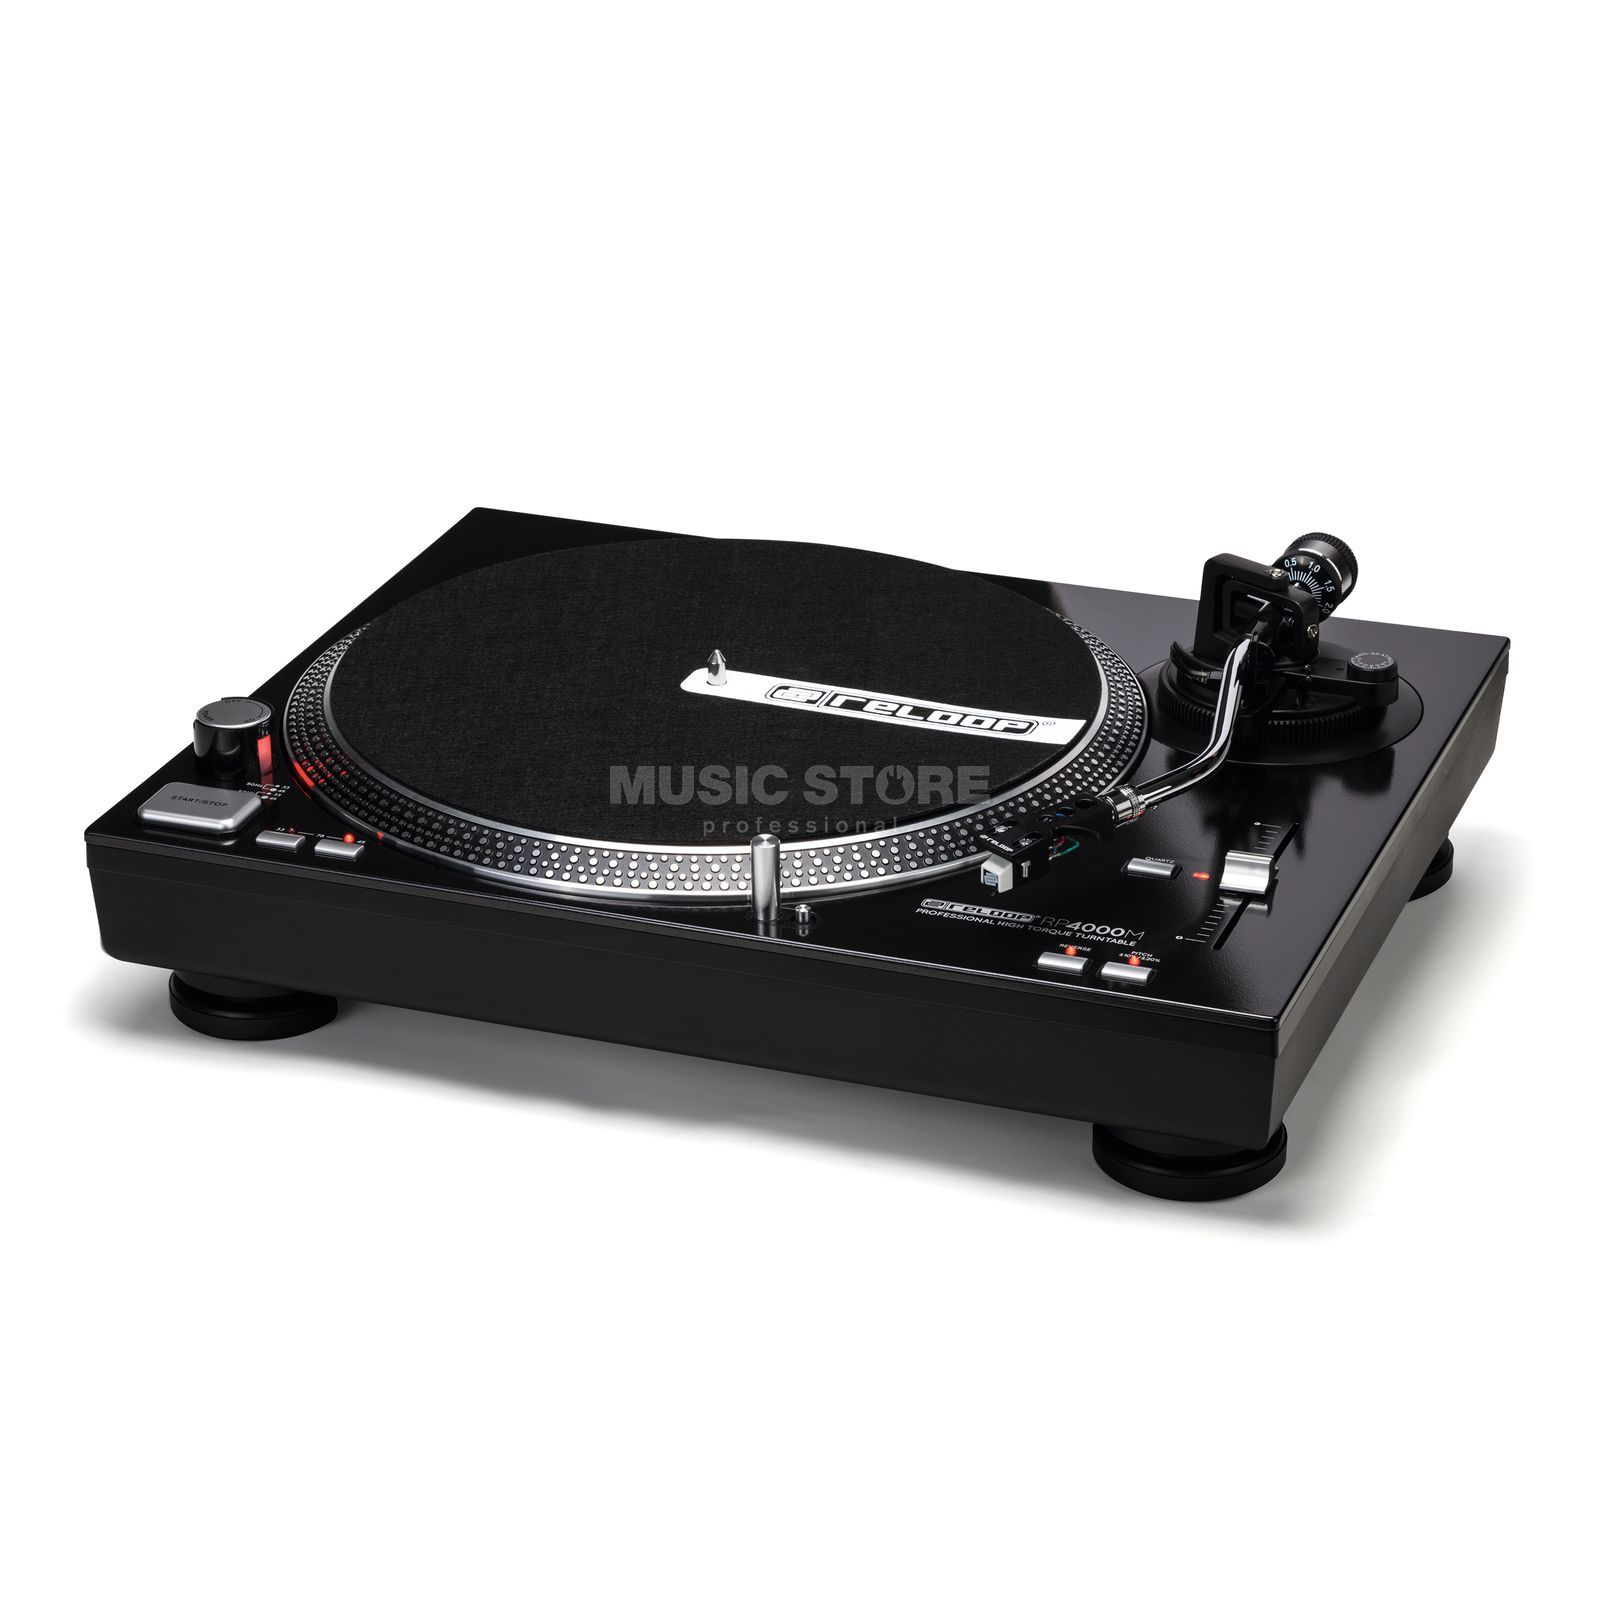 Reloop RP-4000M High Torque DJ-Turntable Product Image